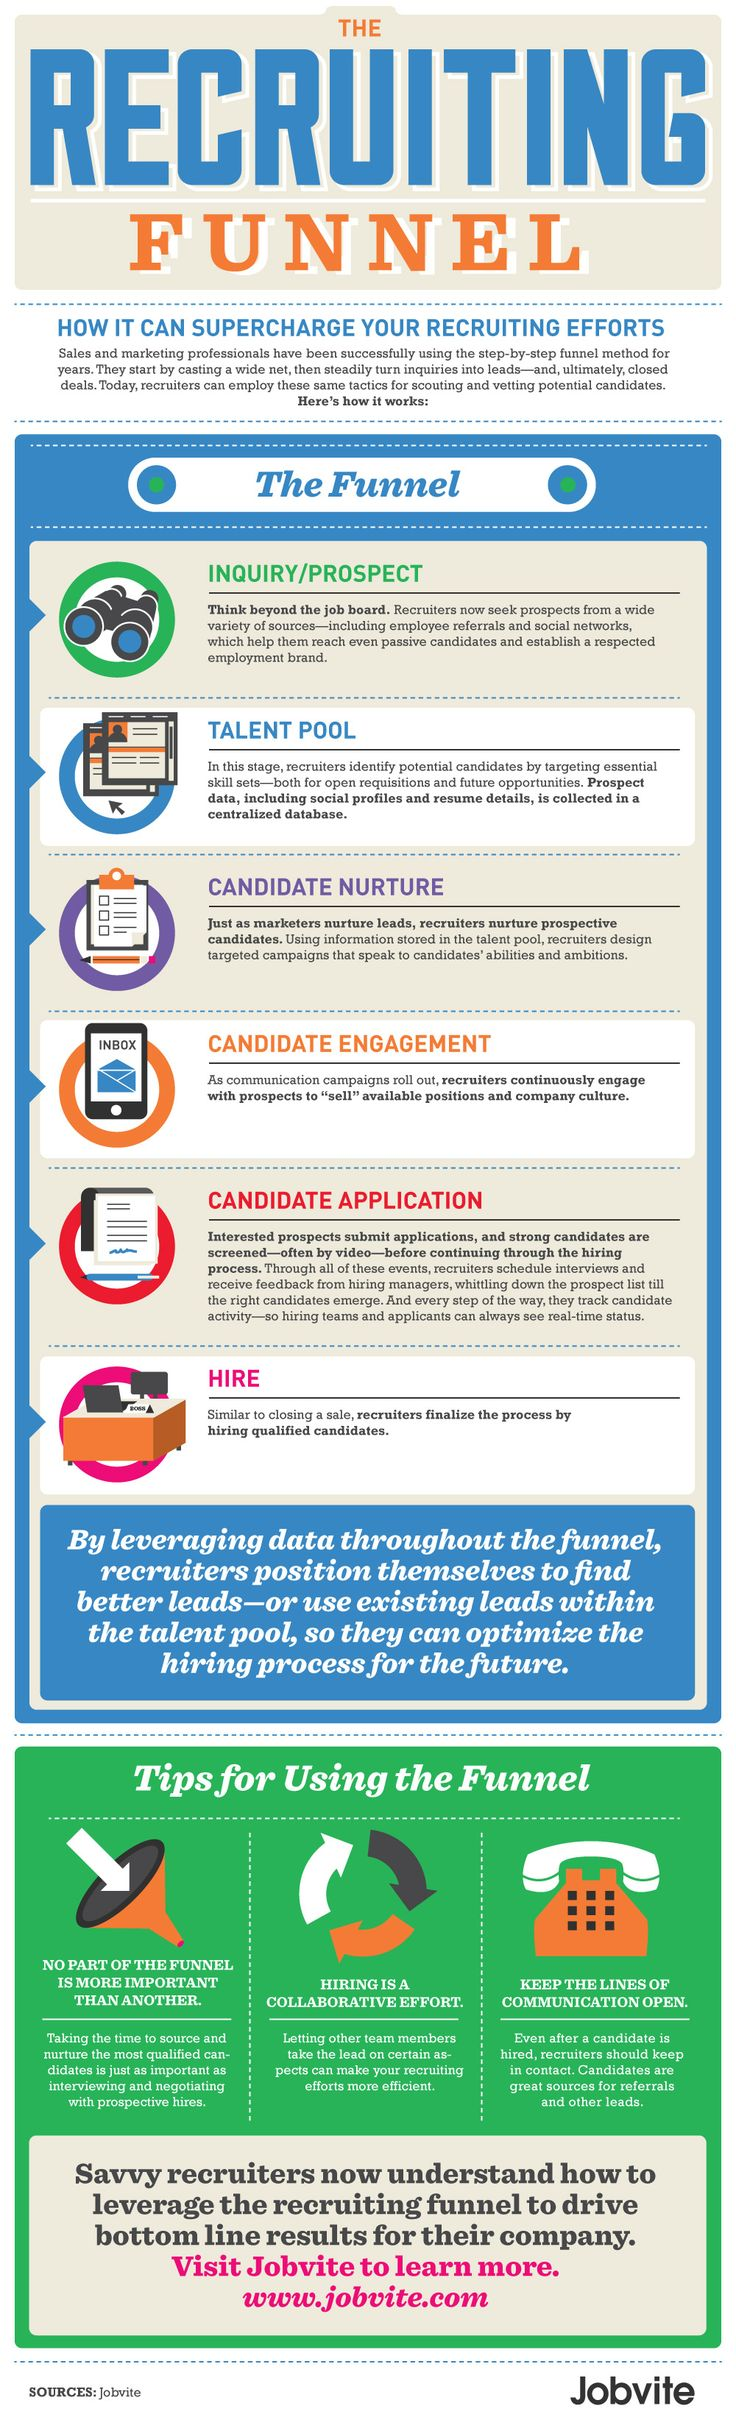 Supercharge Your Recruitment Strategy (Infographic)  Want to locate and hire the best talent? It might help to take a page from sales and marketing professionals and adopt their method of casting a wide net, turning inquiries into leads, and ultimately closing the deal.  Check out the infographic below, compiled by Jobvite, for the complete step-by-step guide on how to leverage the funnel method in order to optimize hiring.